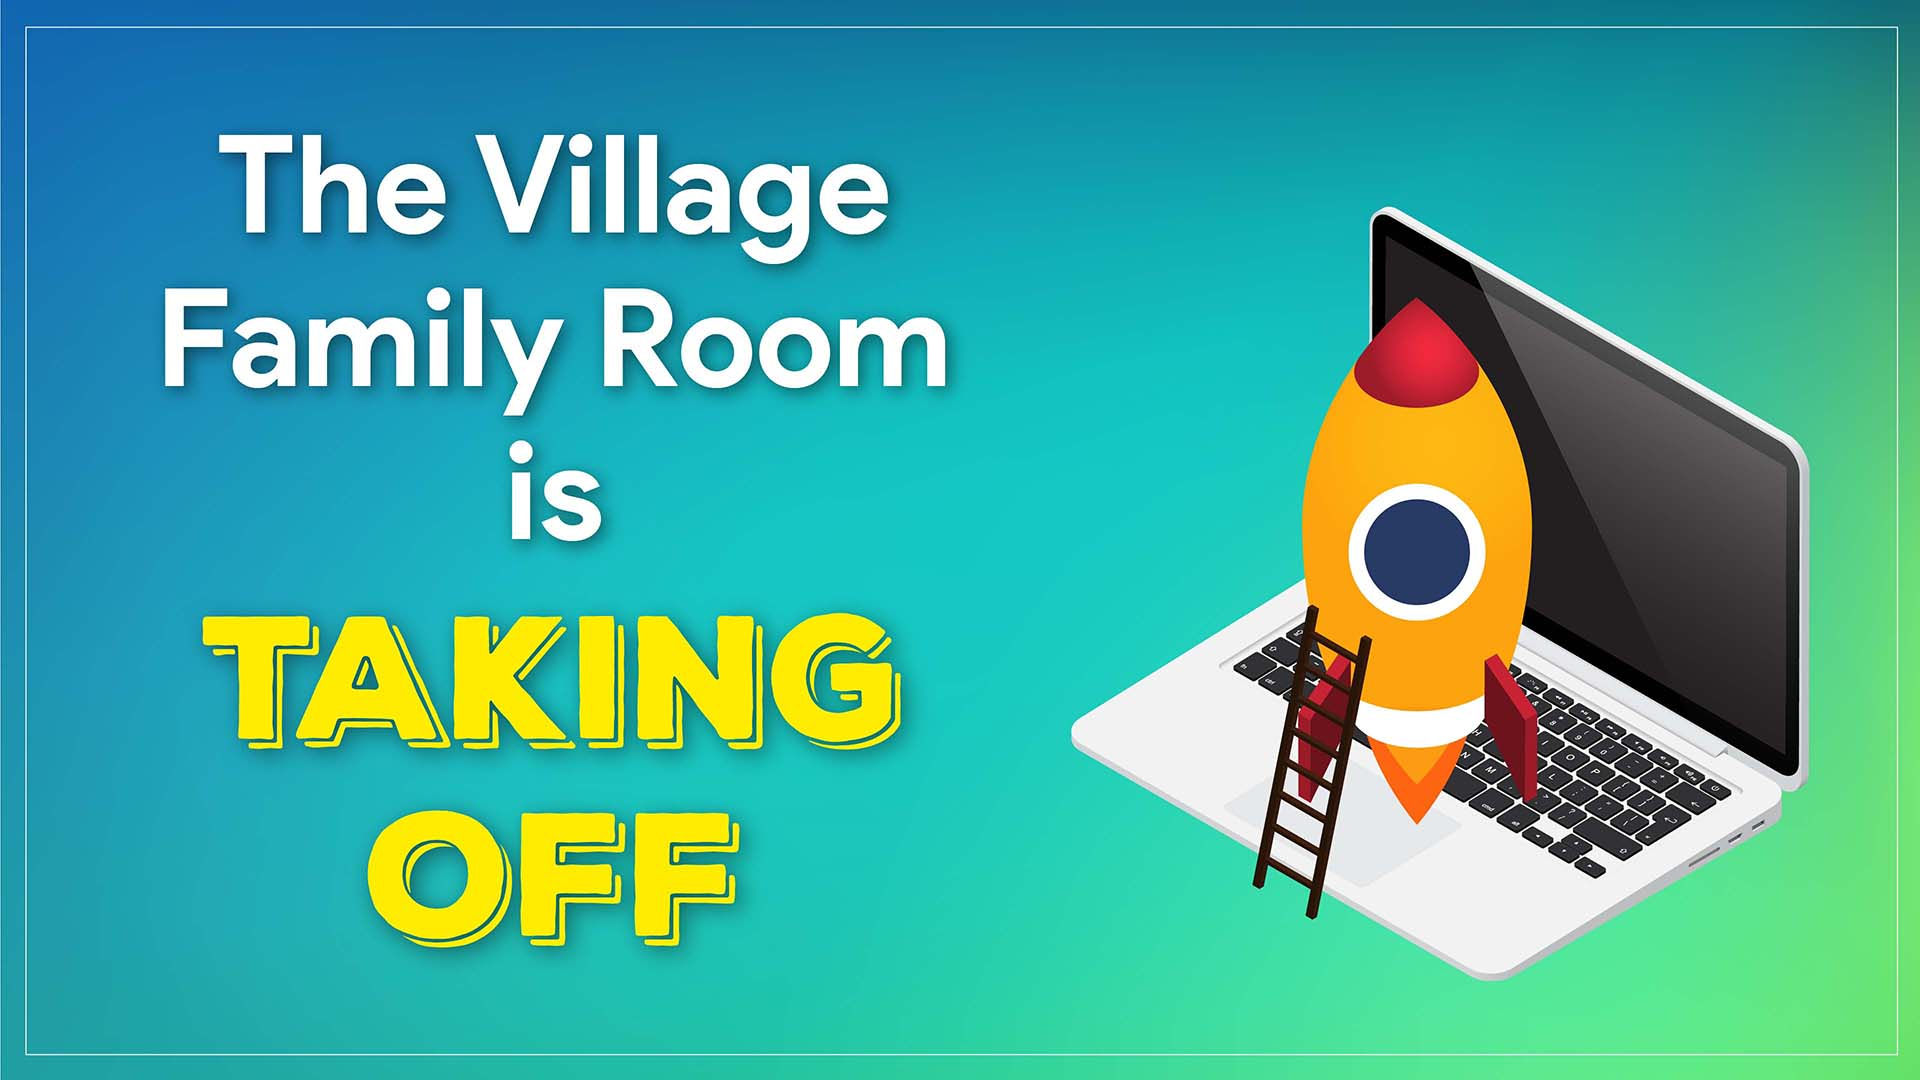 Welcome to the Village Family Room!